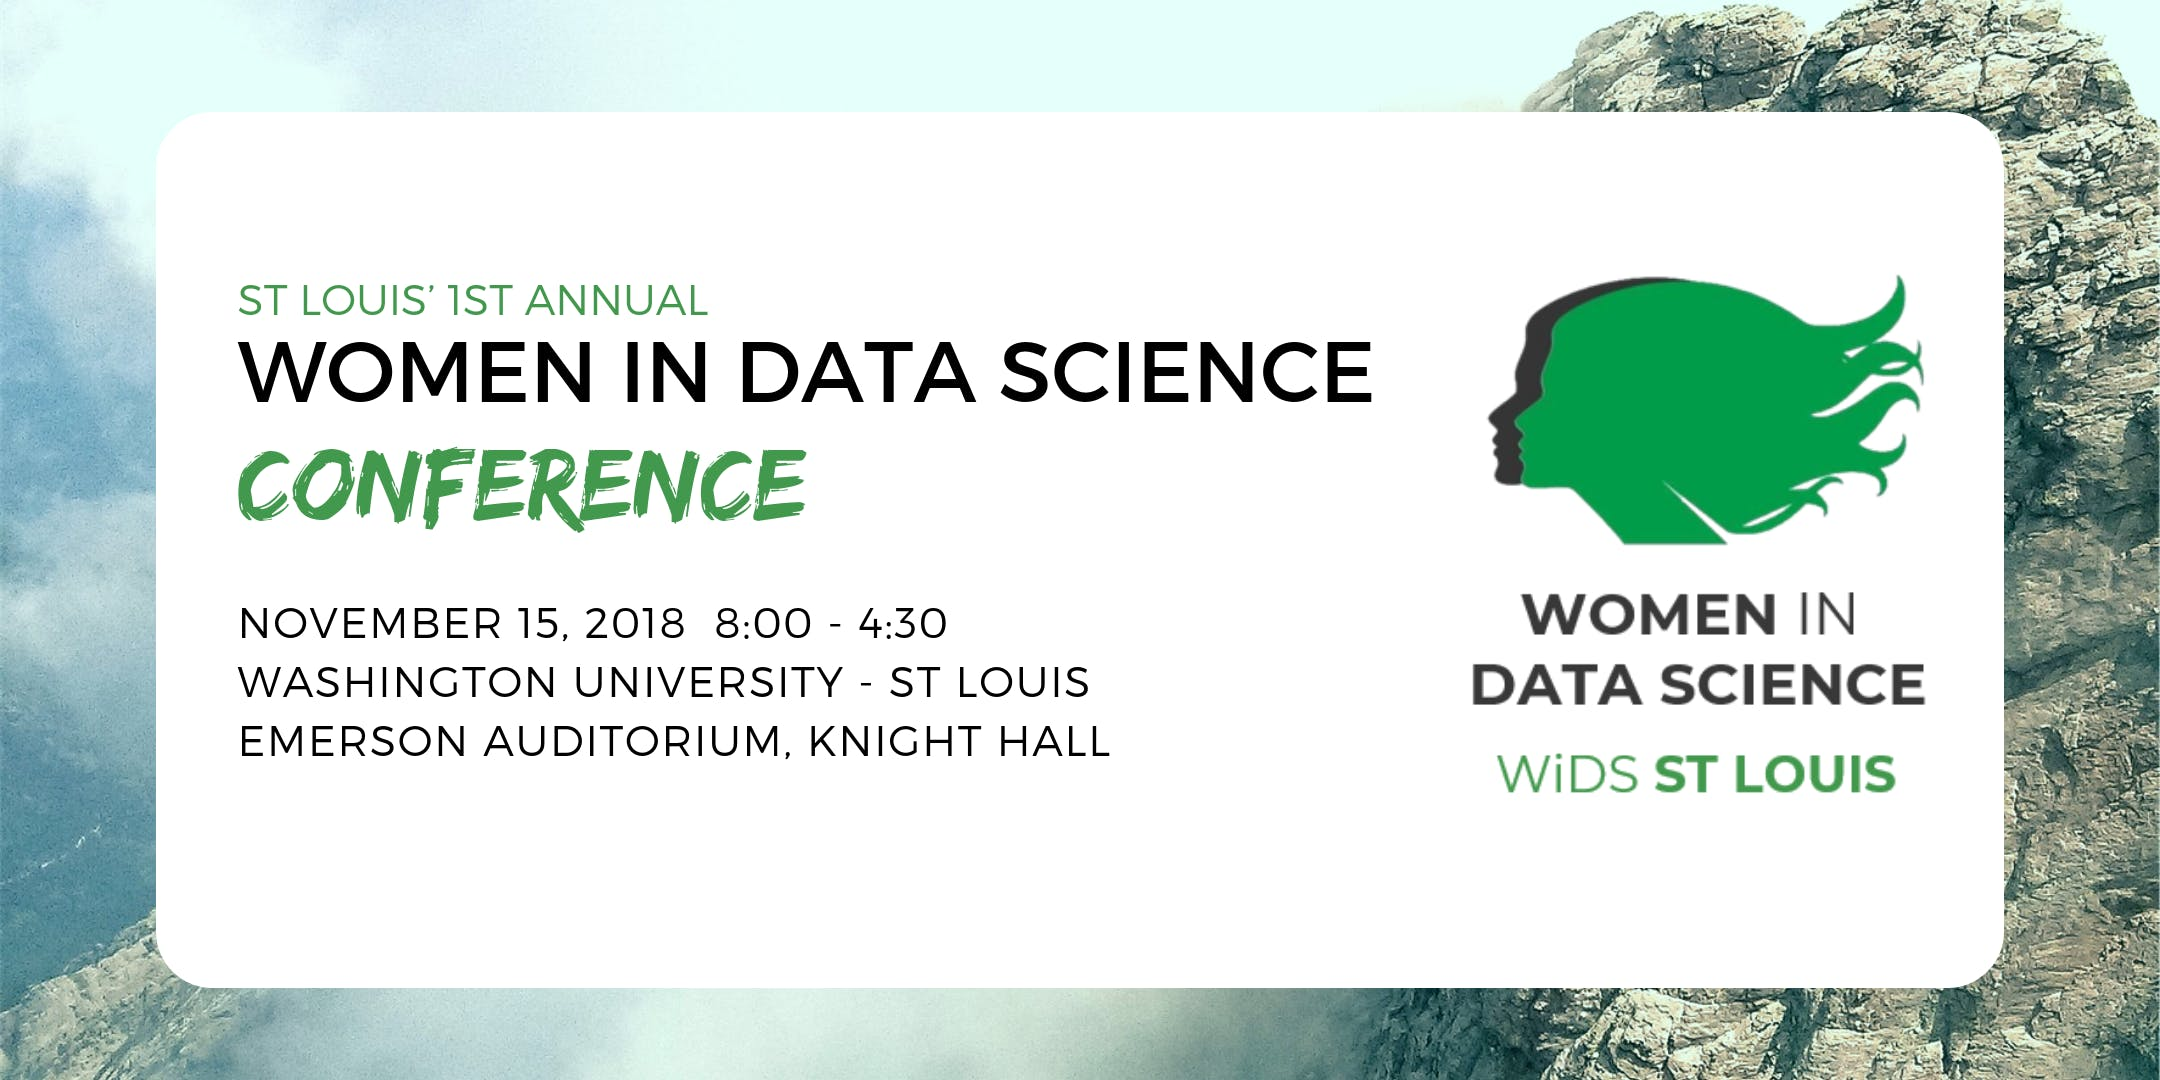 Women in Data Science - St Louis Conference